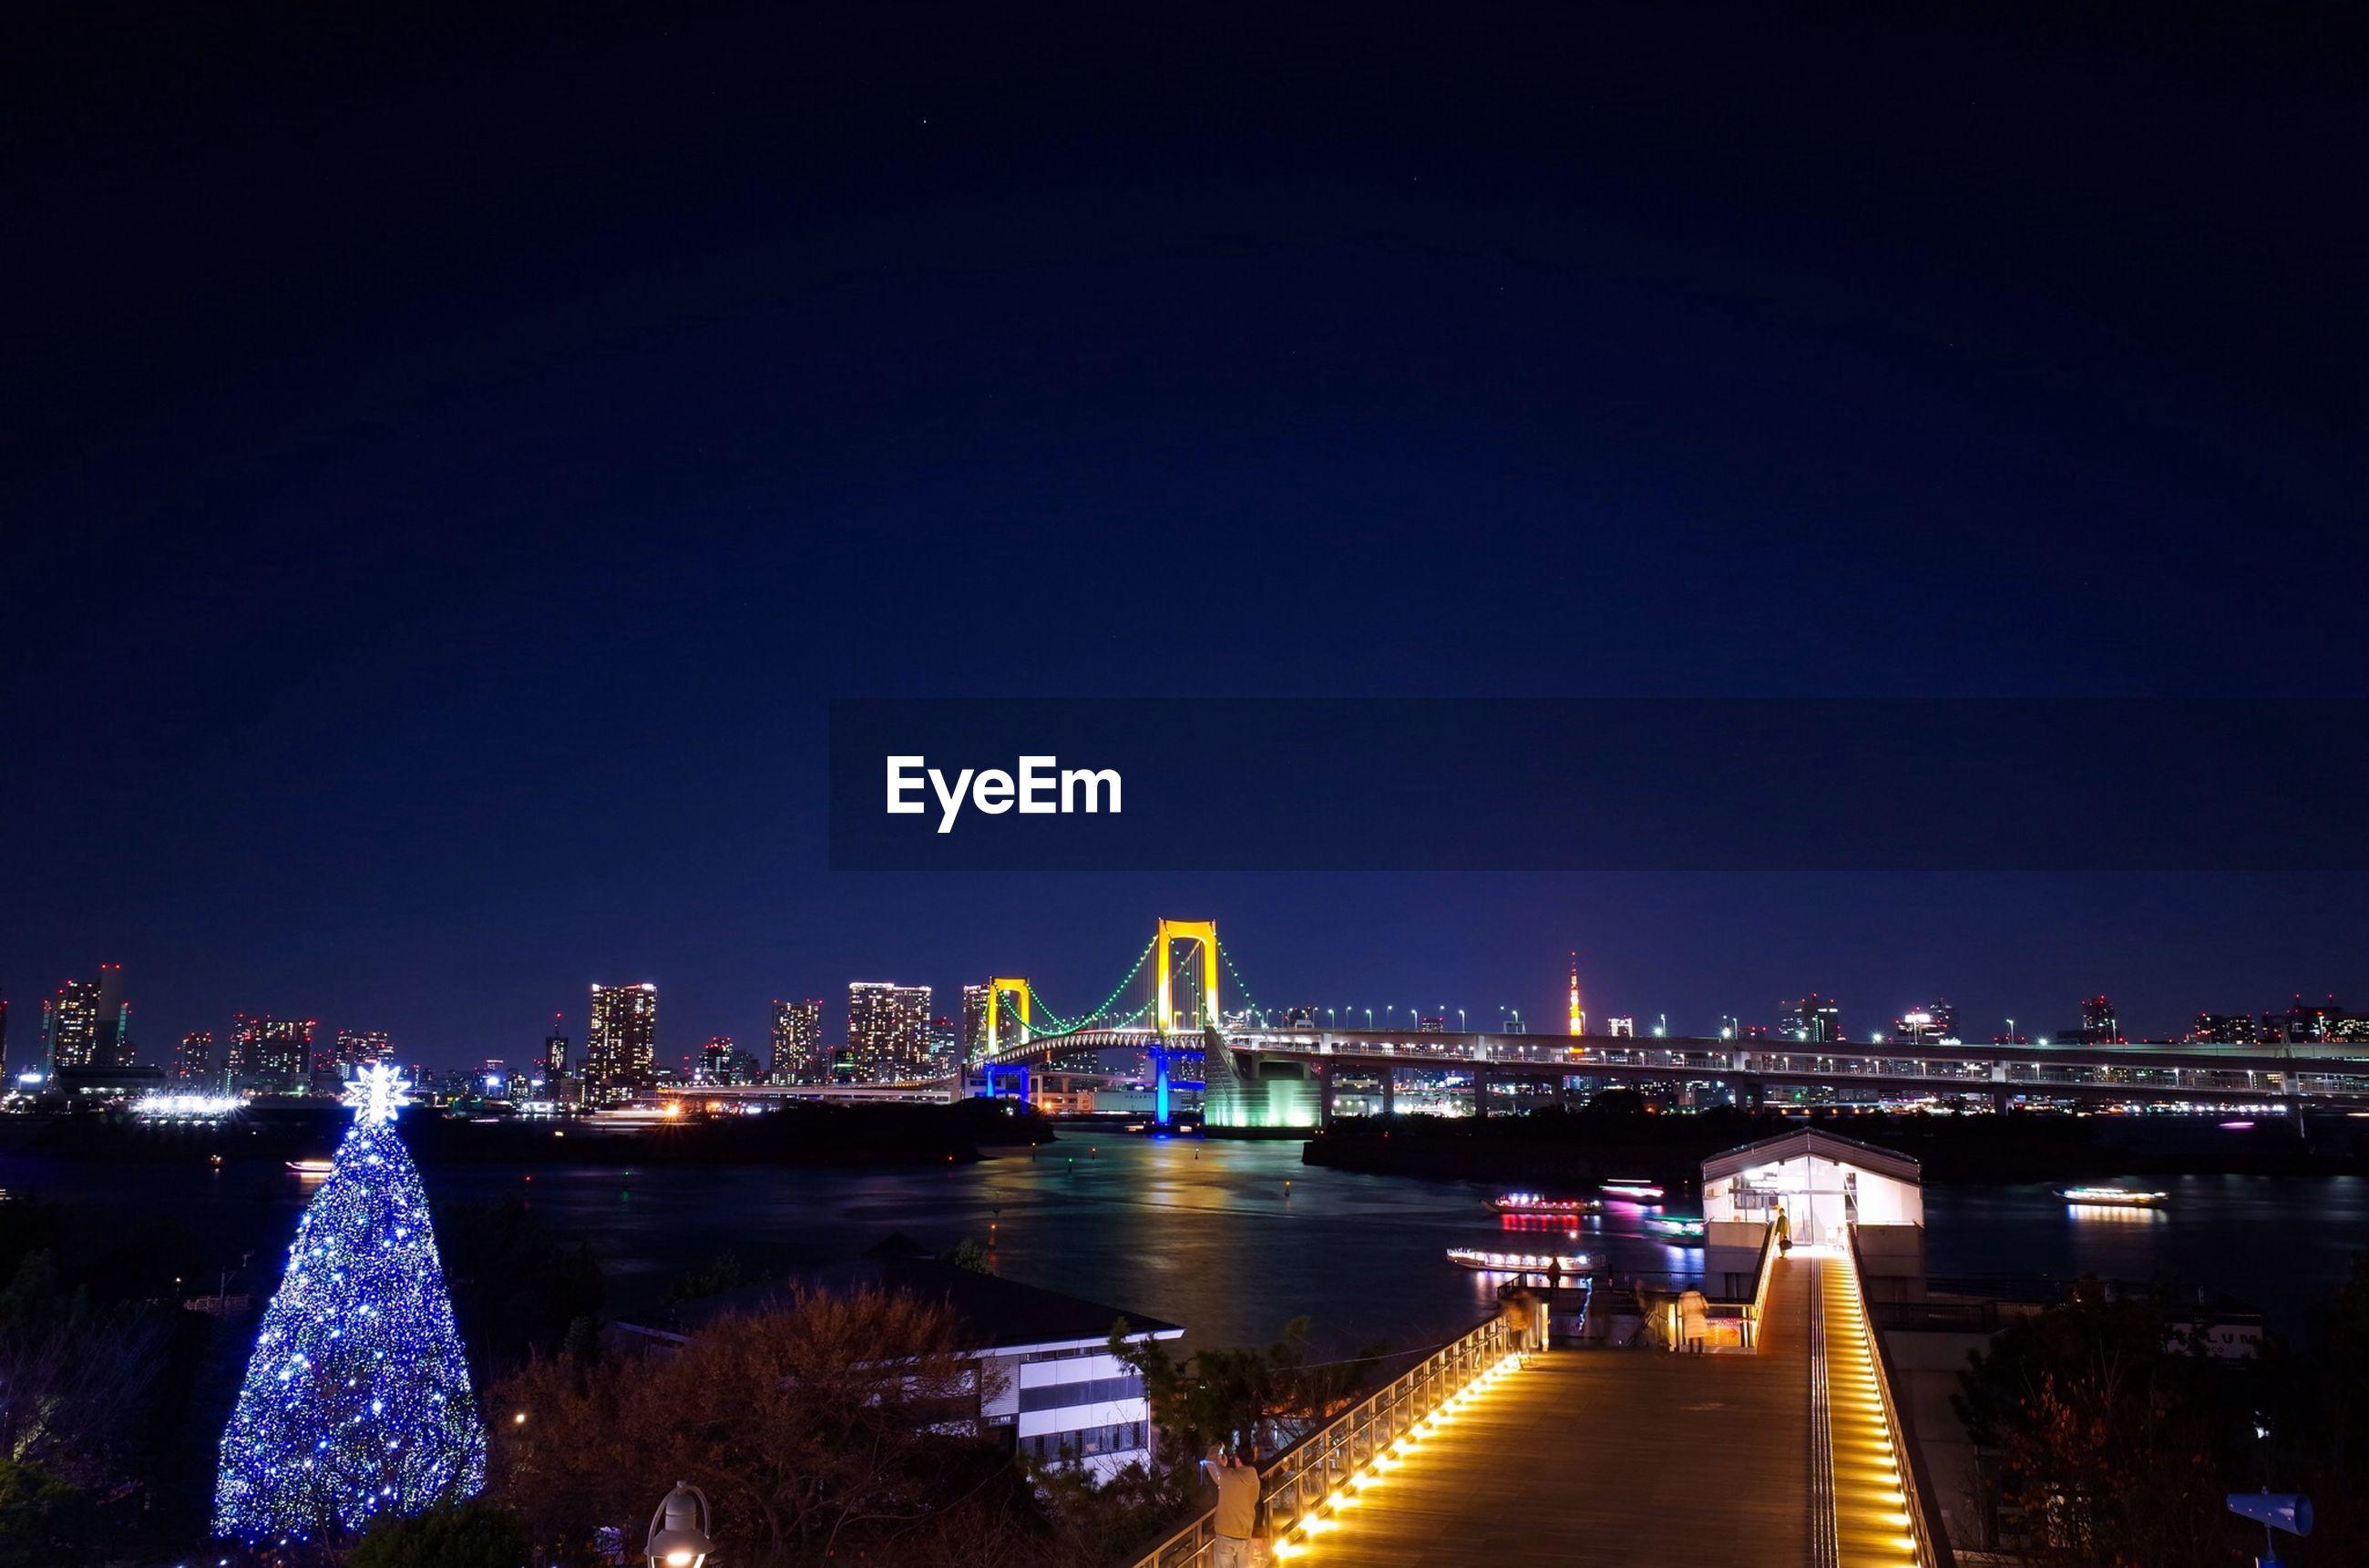 illuminated, night, water, built structure, architecture, city, river, reflection, connection, building exterior, copy space, clear sky, bridge - man made structure, lighting equipment, street light, waterfront, sky, cityscape, light, light - natural phenomenon